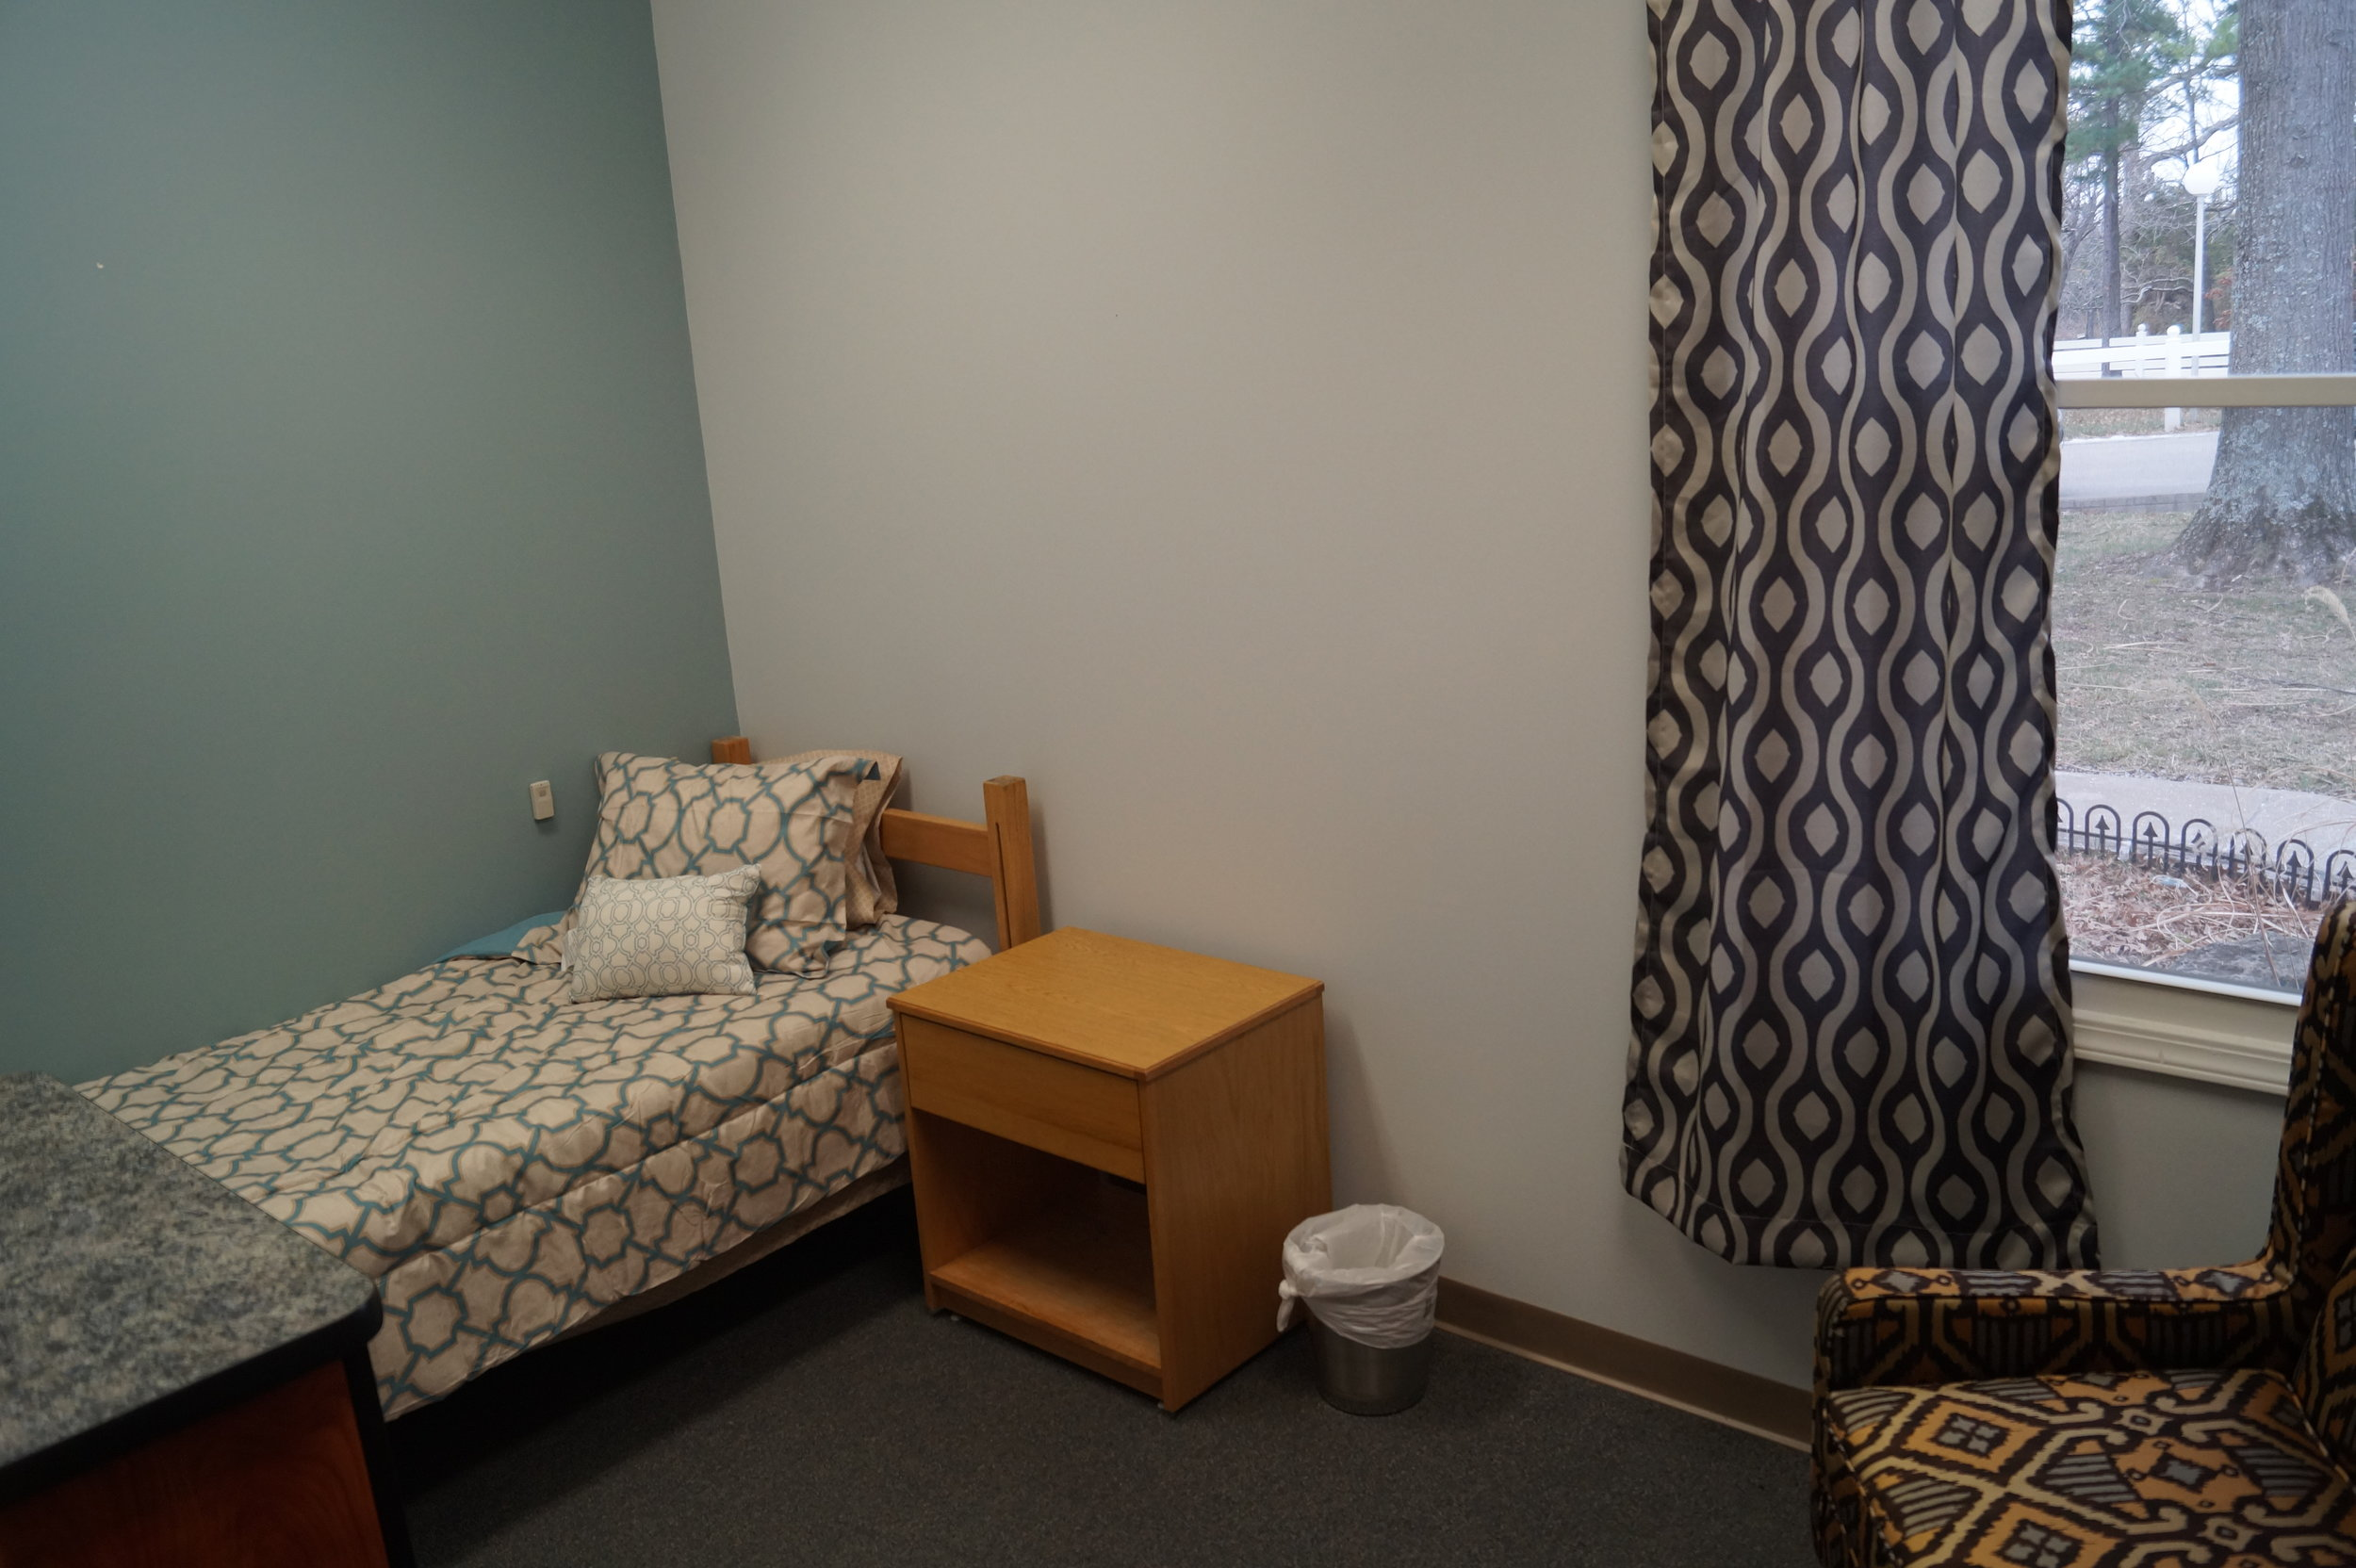 Another bedroom at the Sunnyhill Independence Center